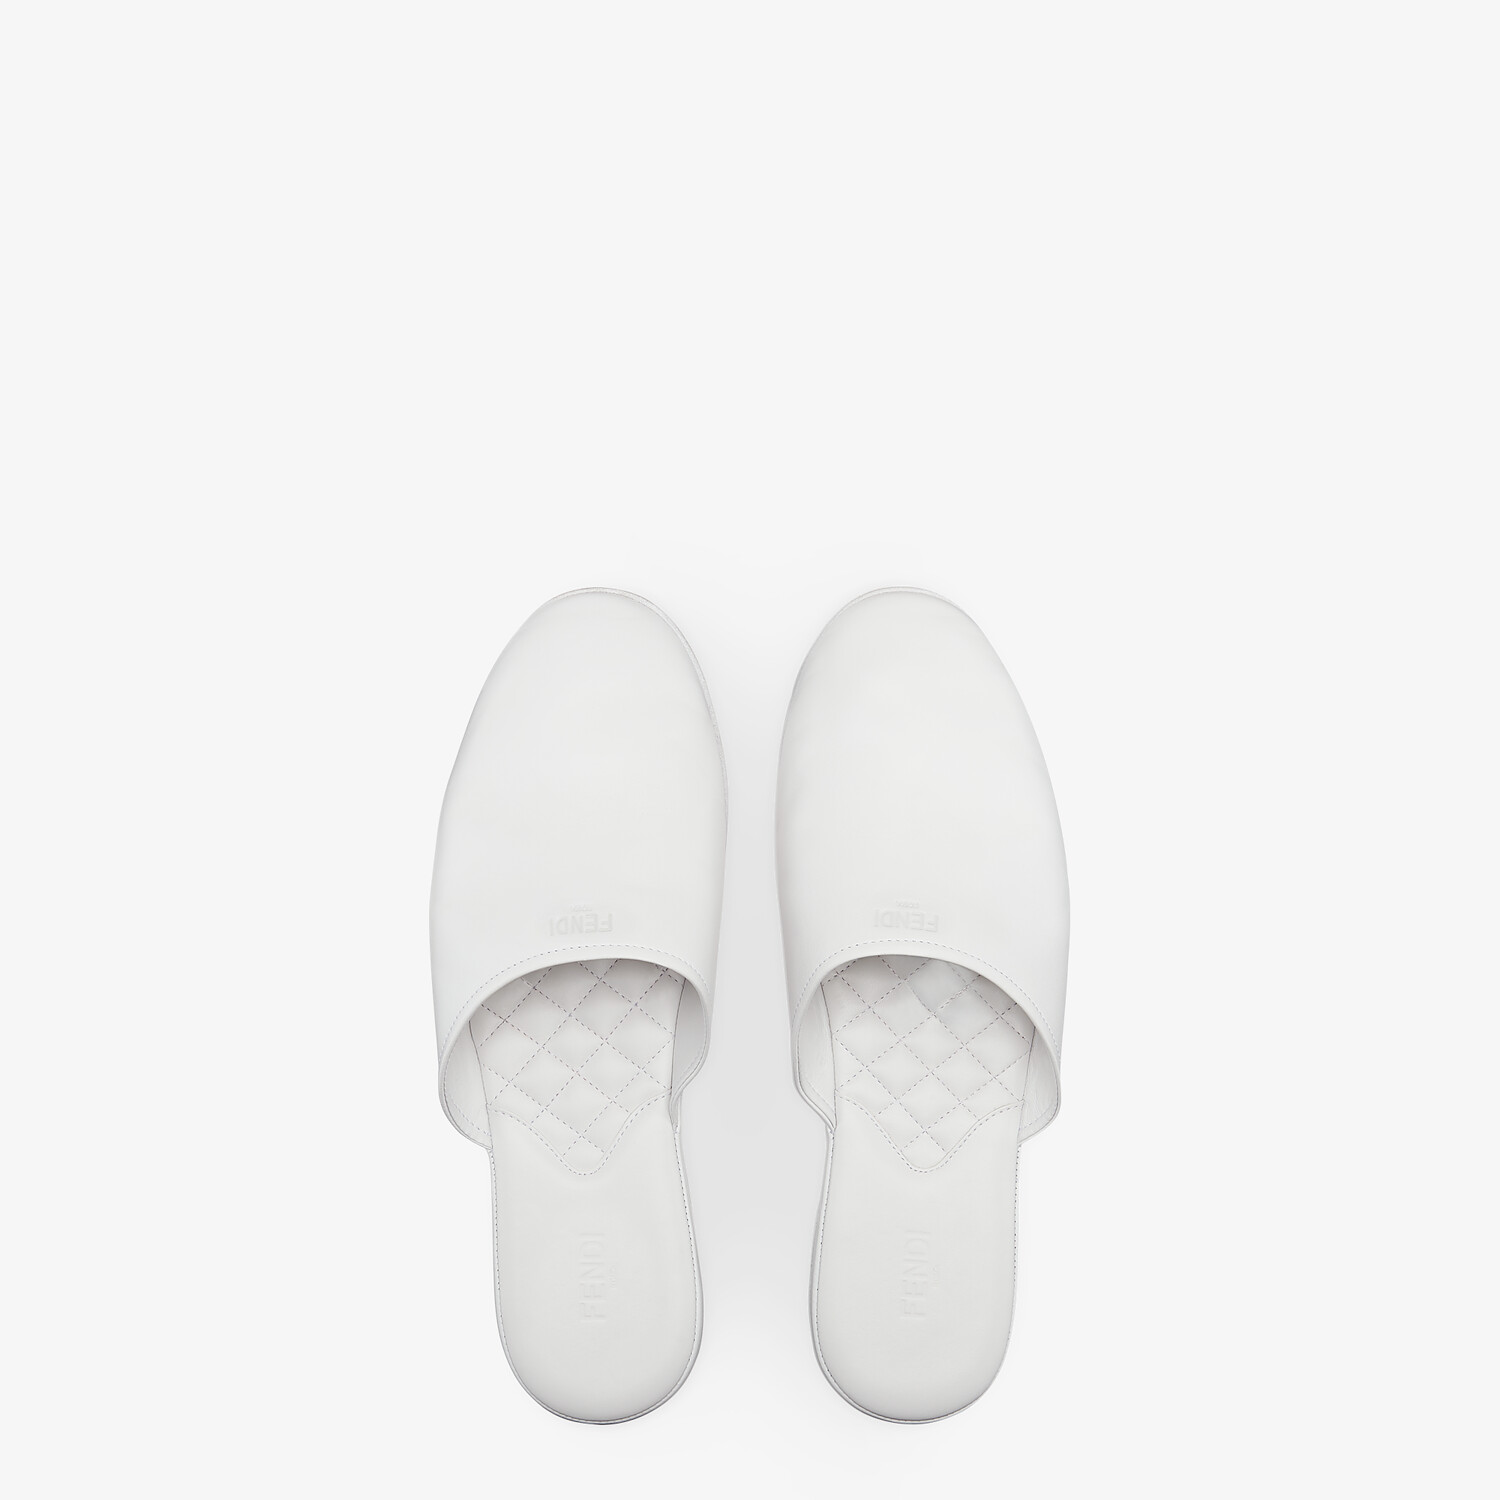 FENDI SLIPPERS - White nappa leather mules - view 4 detail